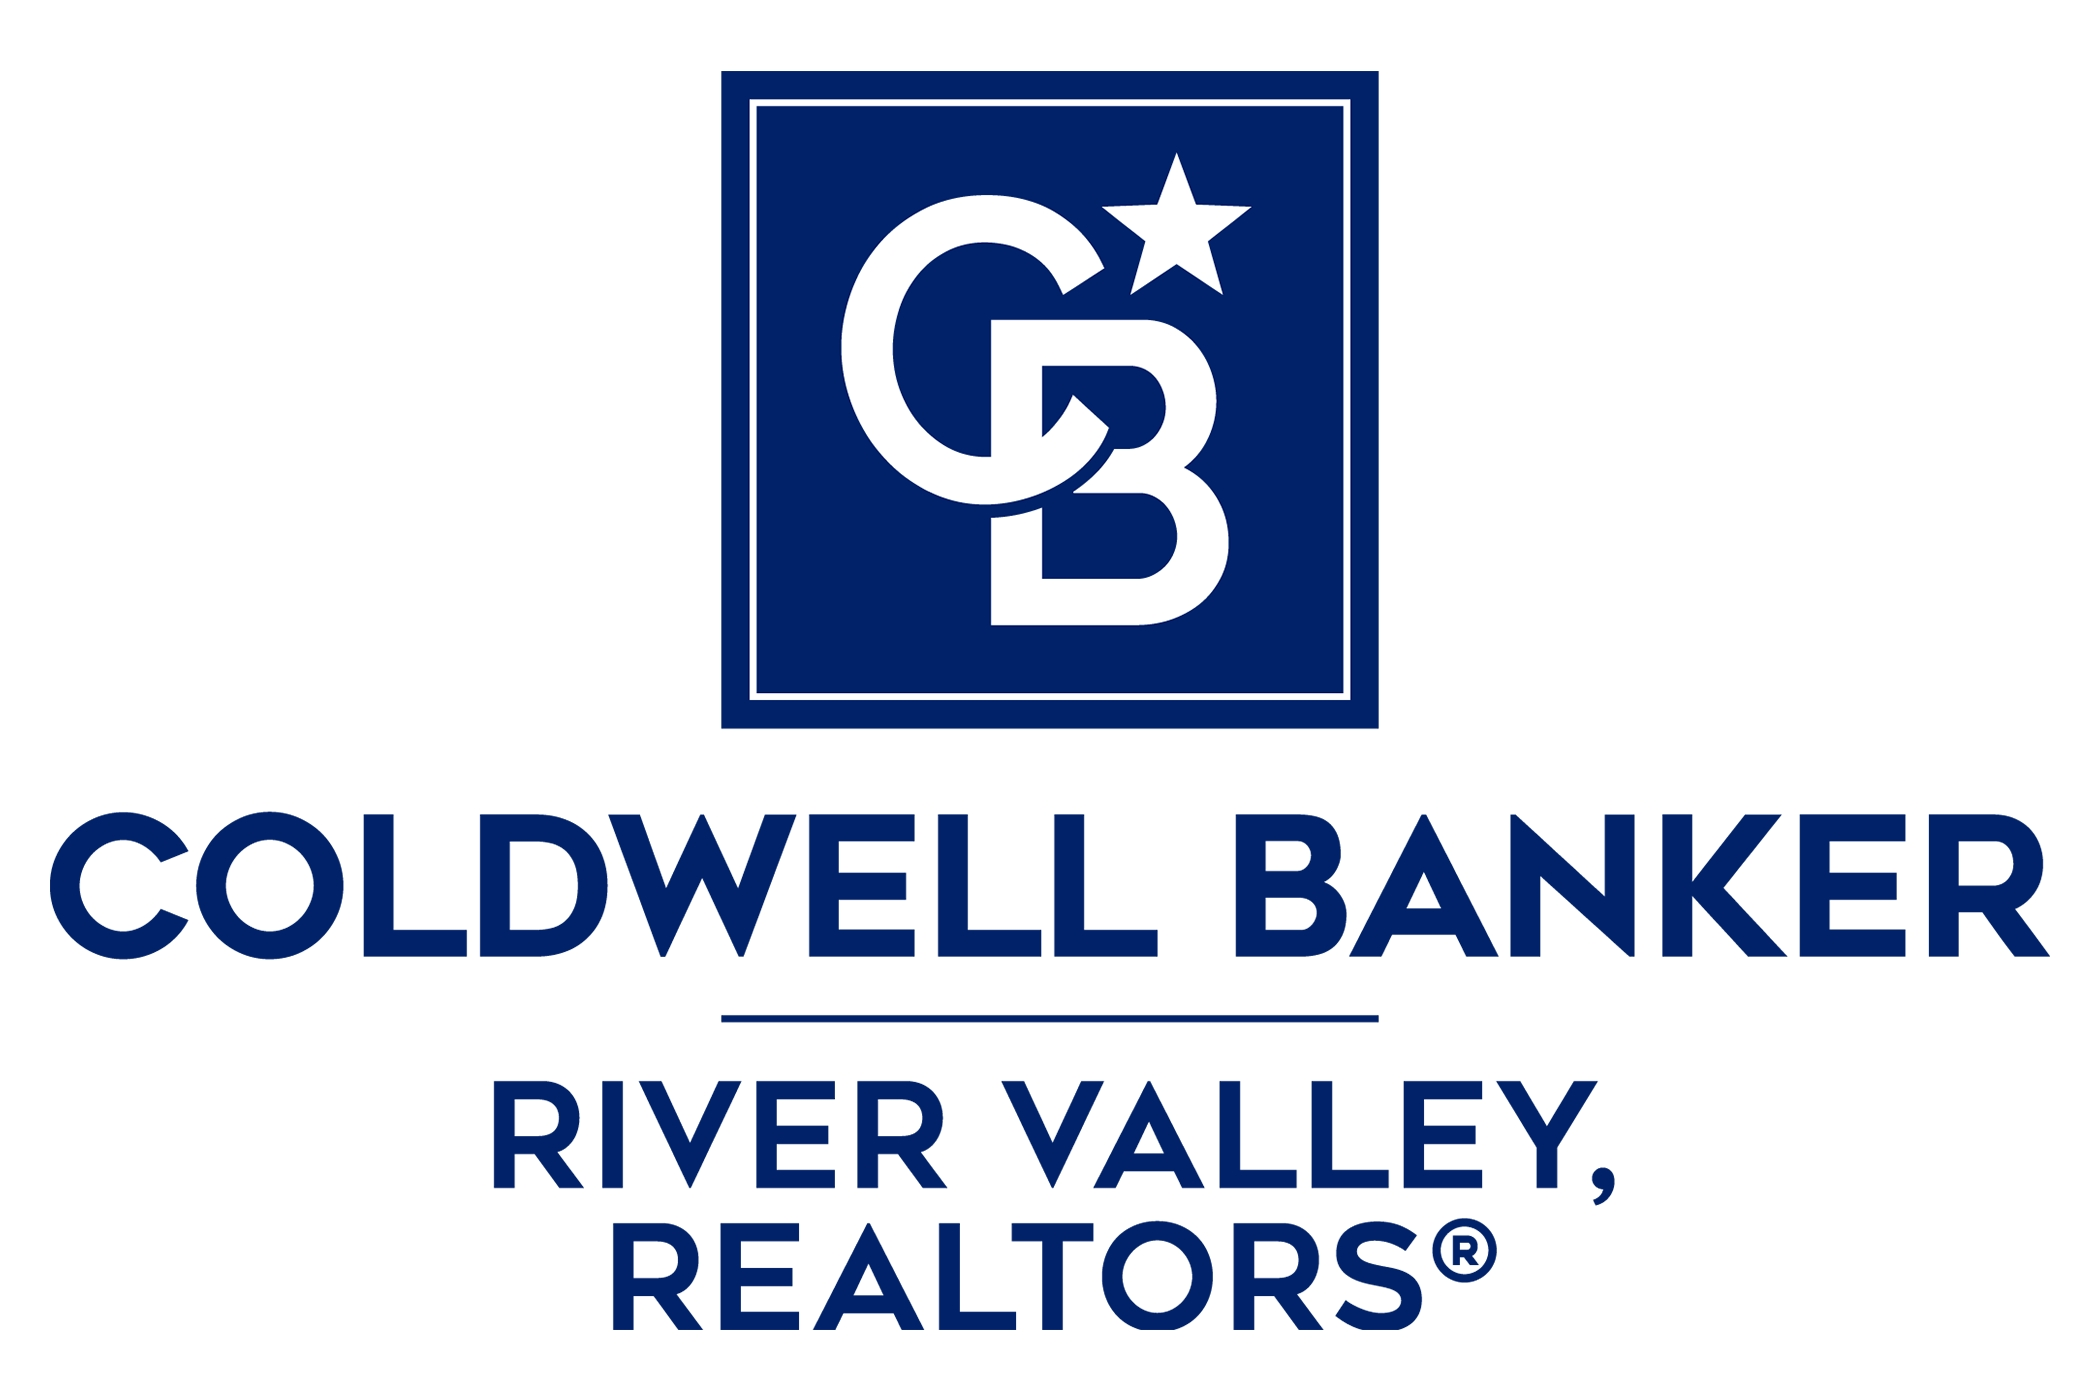 Seth Stegemeyer - Coldwell Banker River Valley Realtors